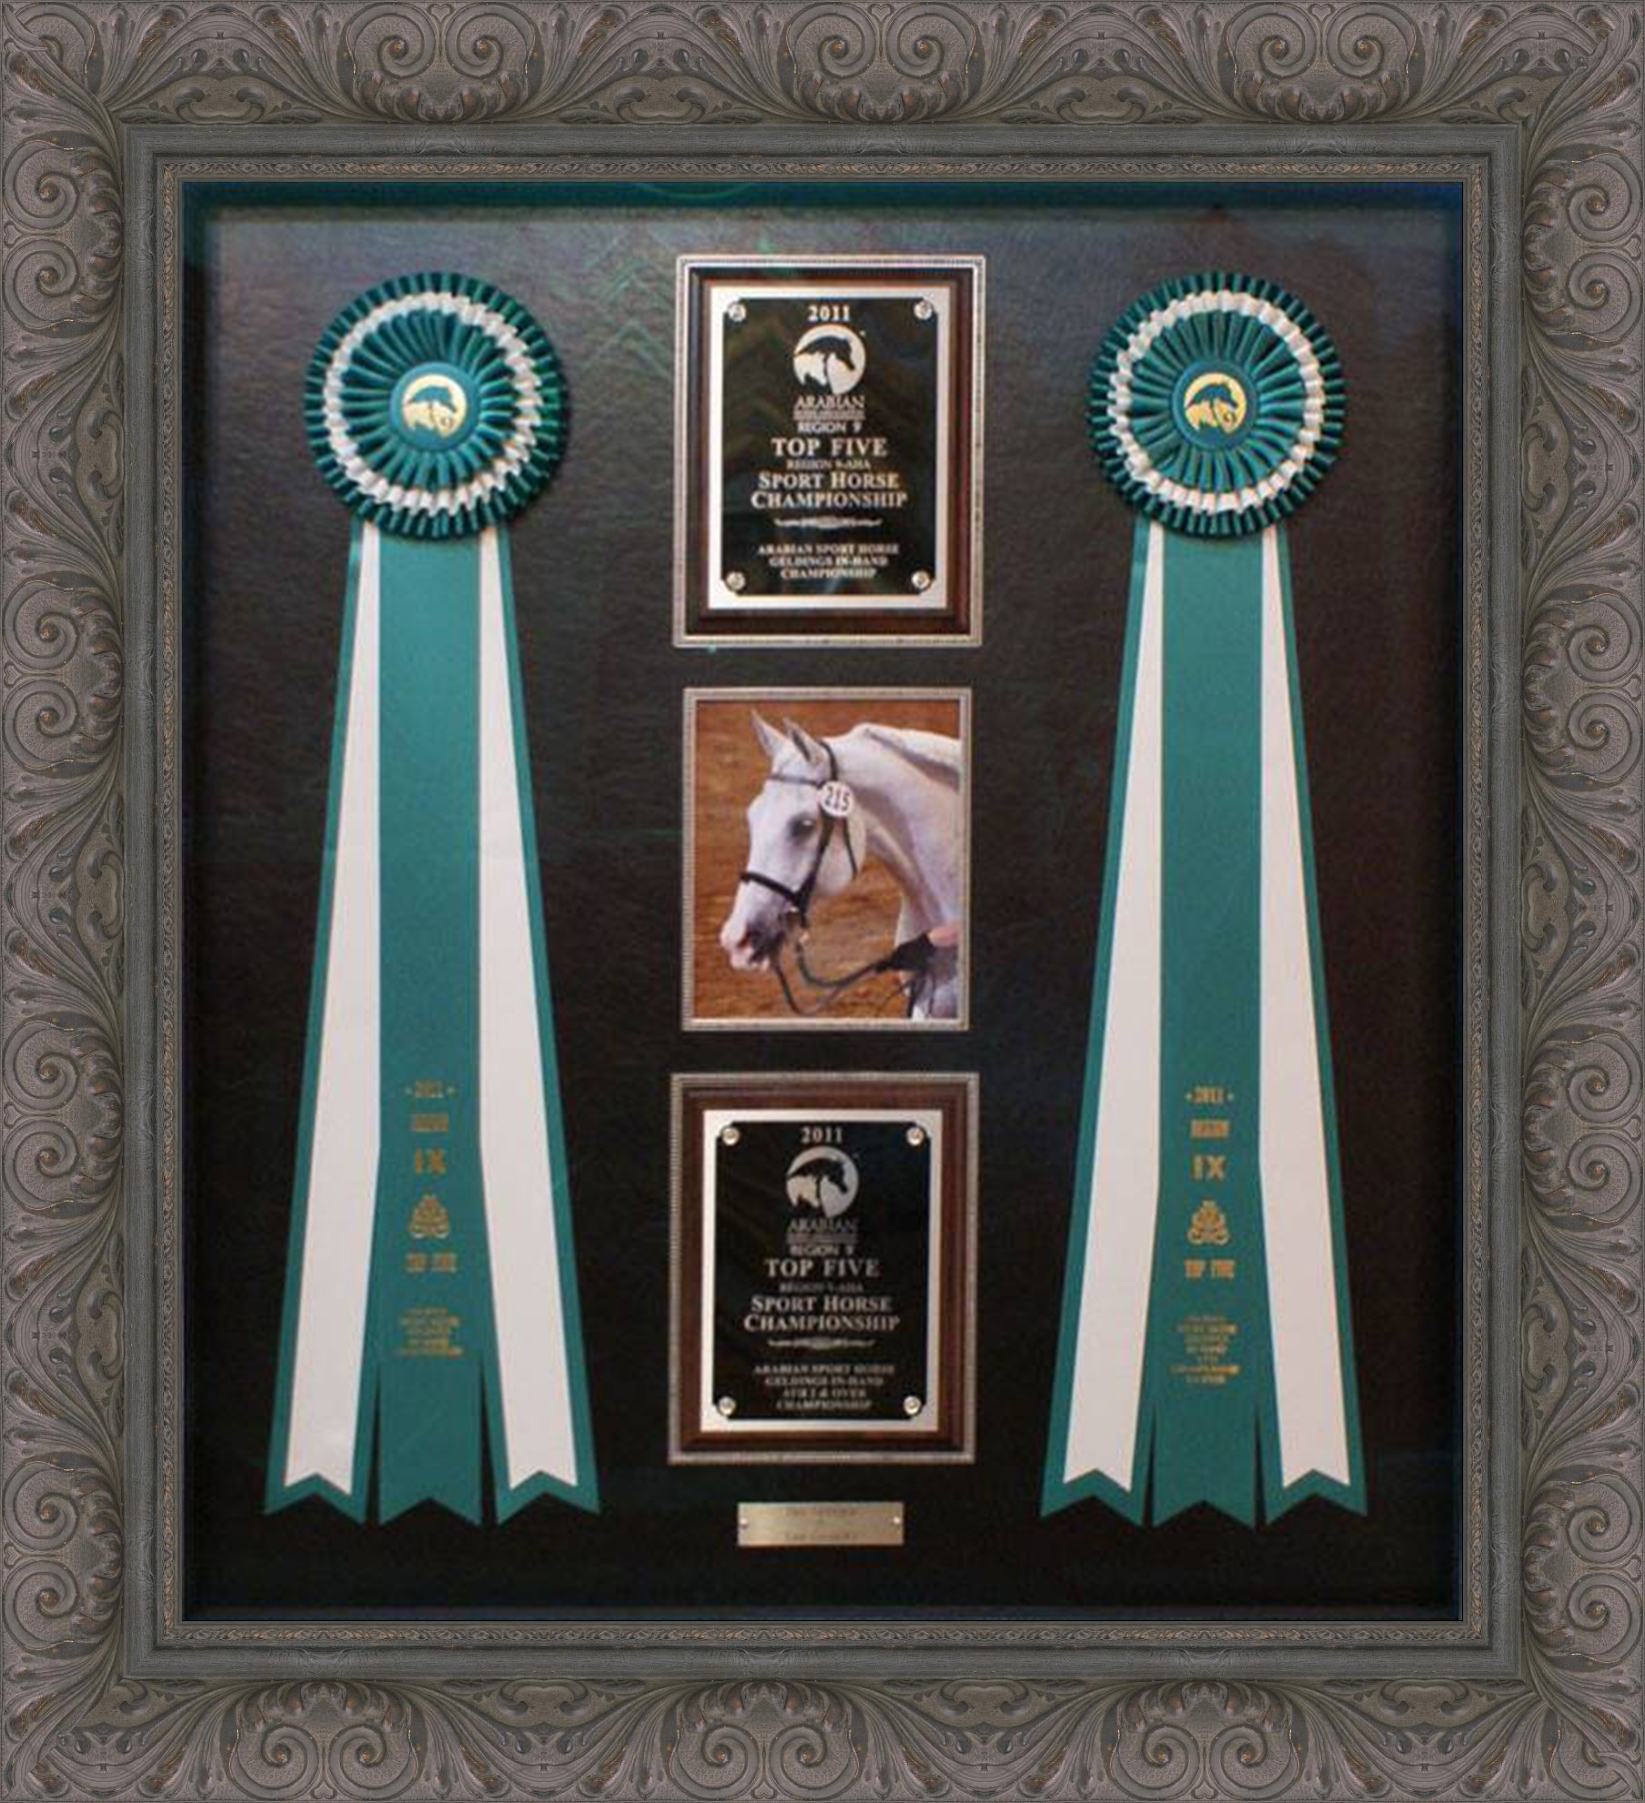 Oversize framing arthaus custom picture framing click on the icons below to see samples of our oversize framing jeuxipadfo Gallery